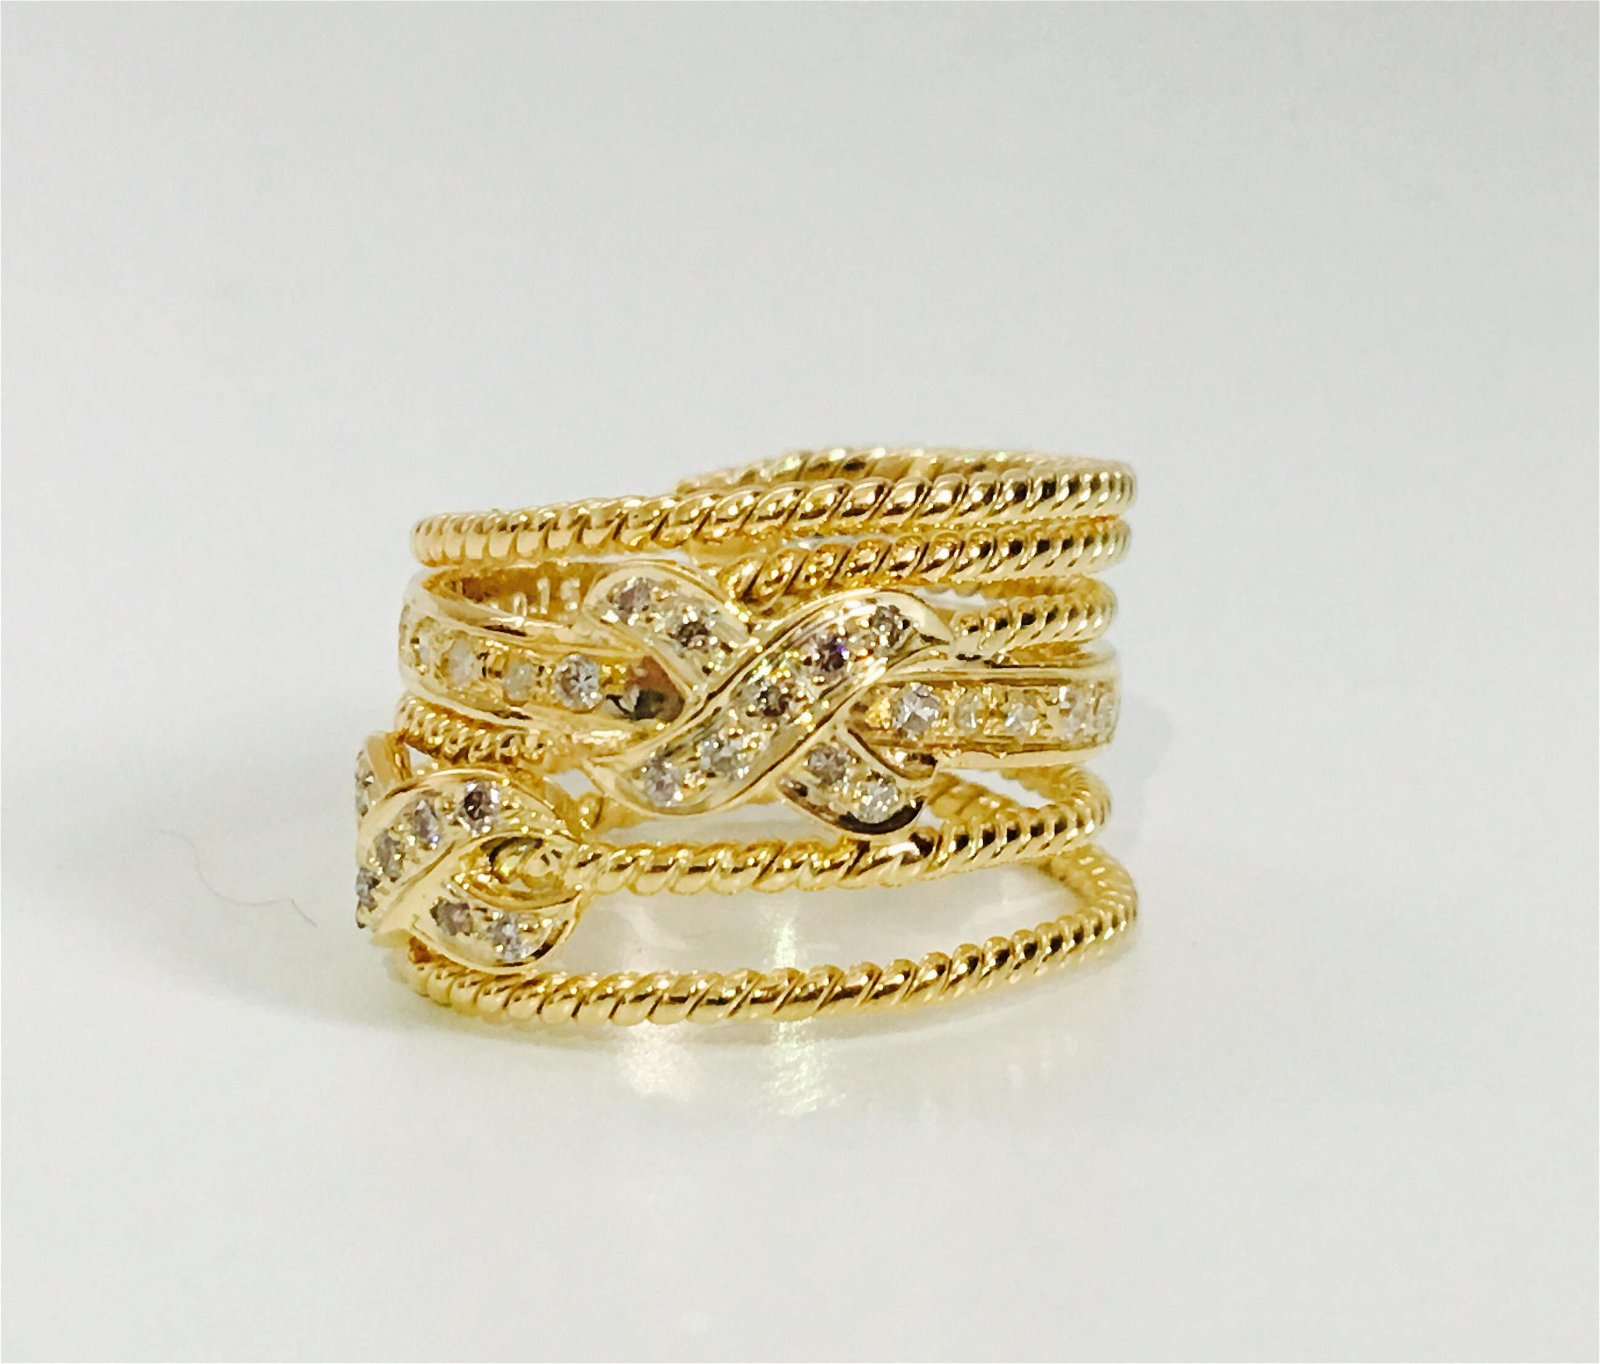 18k Gold, 1/2CT VS Clarity and G Color Diamond Ring